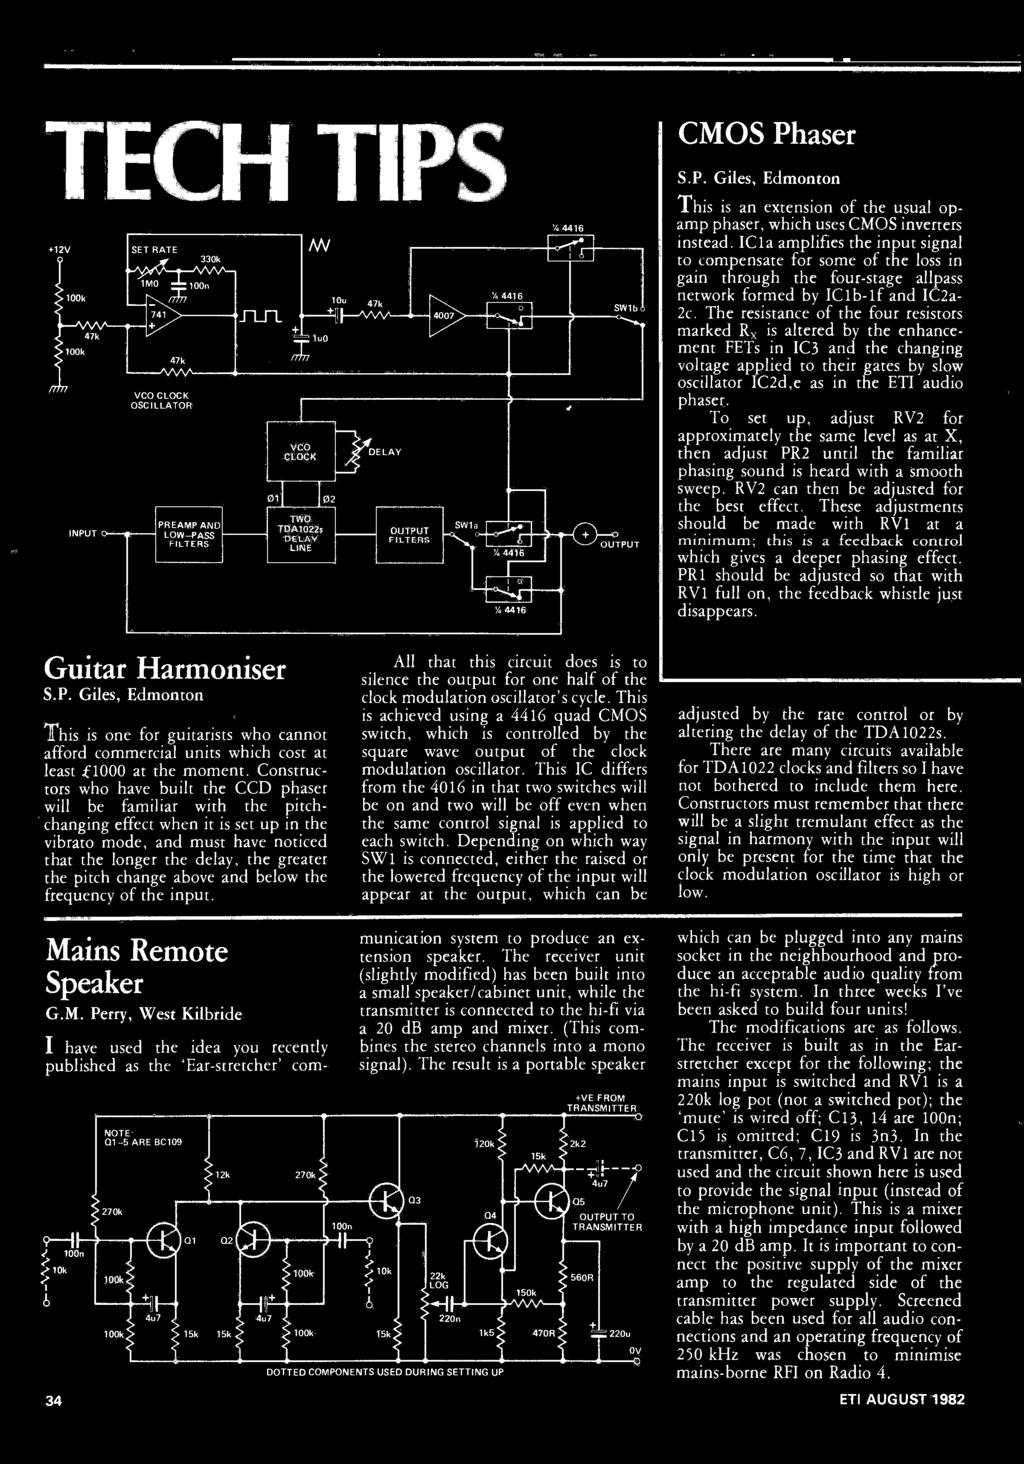 Handle Machine Code For Aspiring Guitarists Configurations A New Single Transistor Amplifier Revisited Part 4 Av Amp Rin Vs Vce 4416 Swib This Is An Extension Of The Usual Op Phaser Which